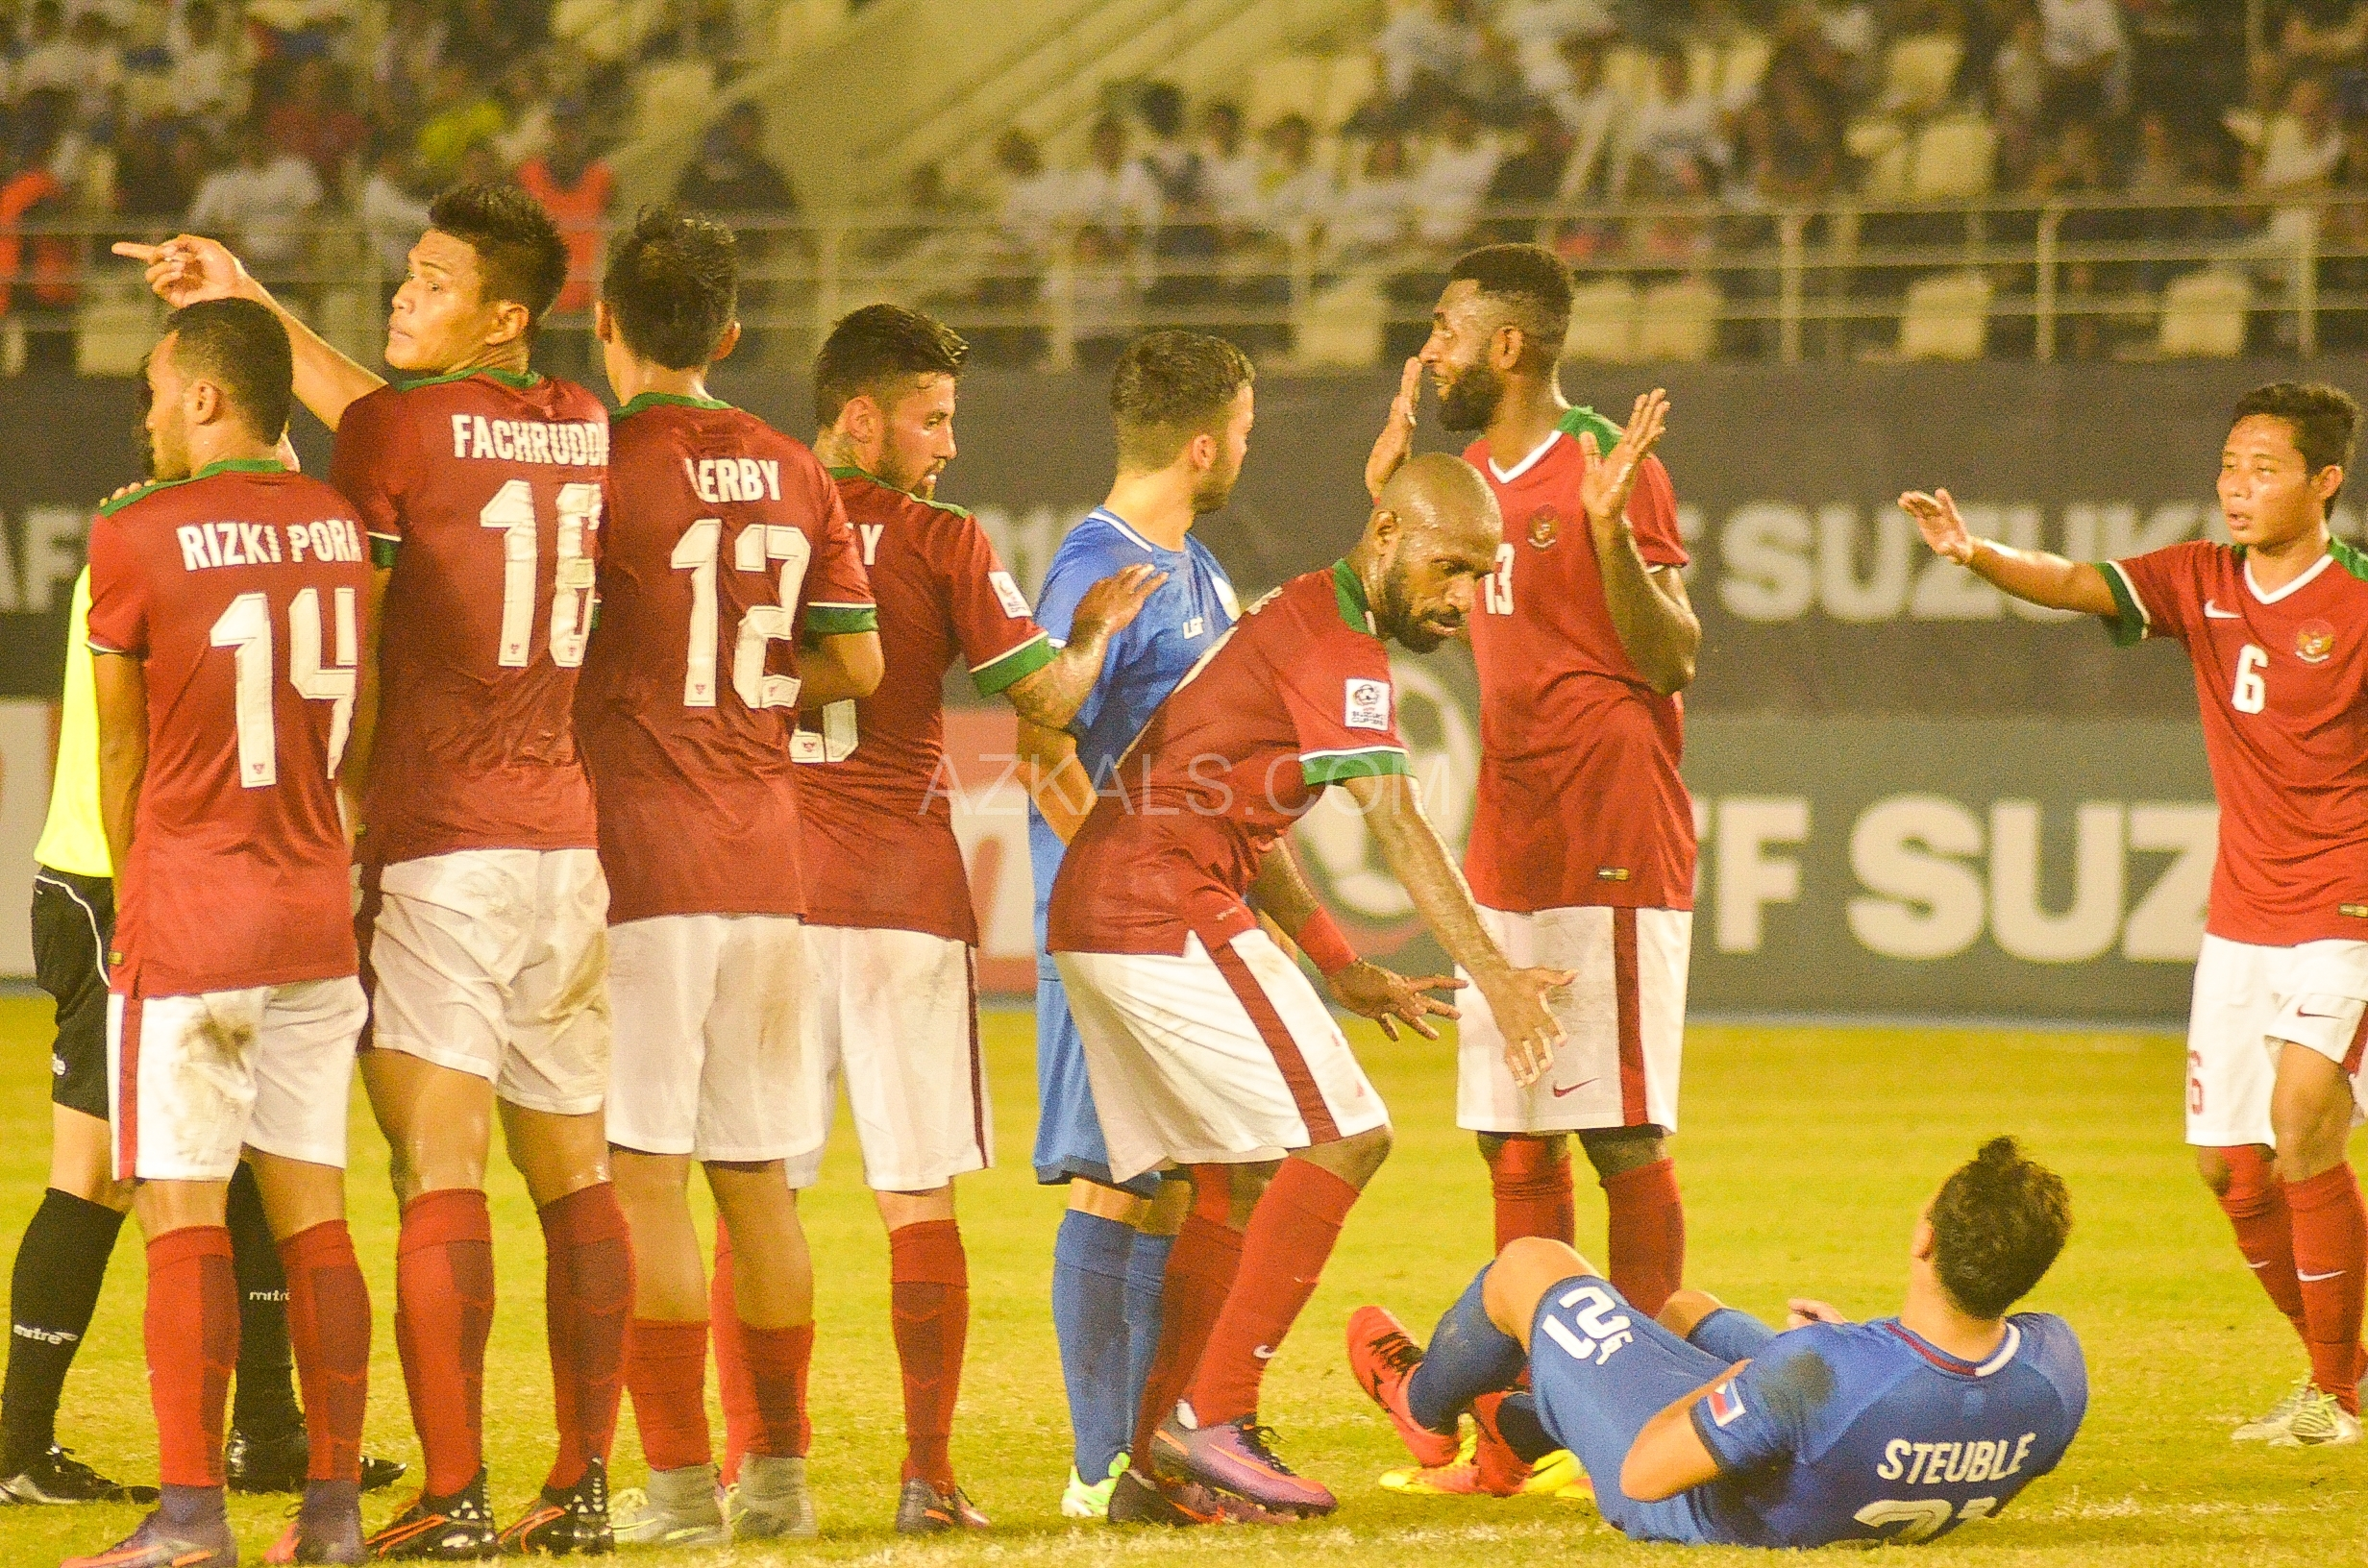 Steuble was elbowed by the number 13 player of Indonesia.